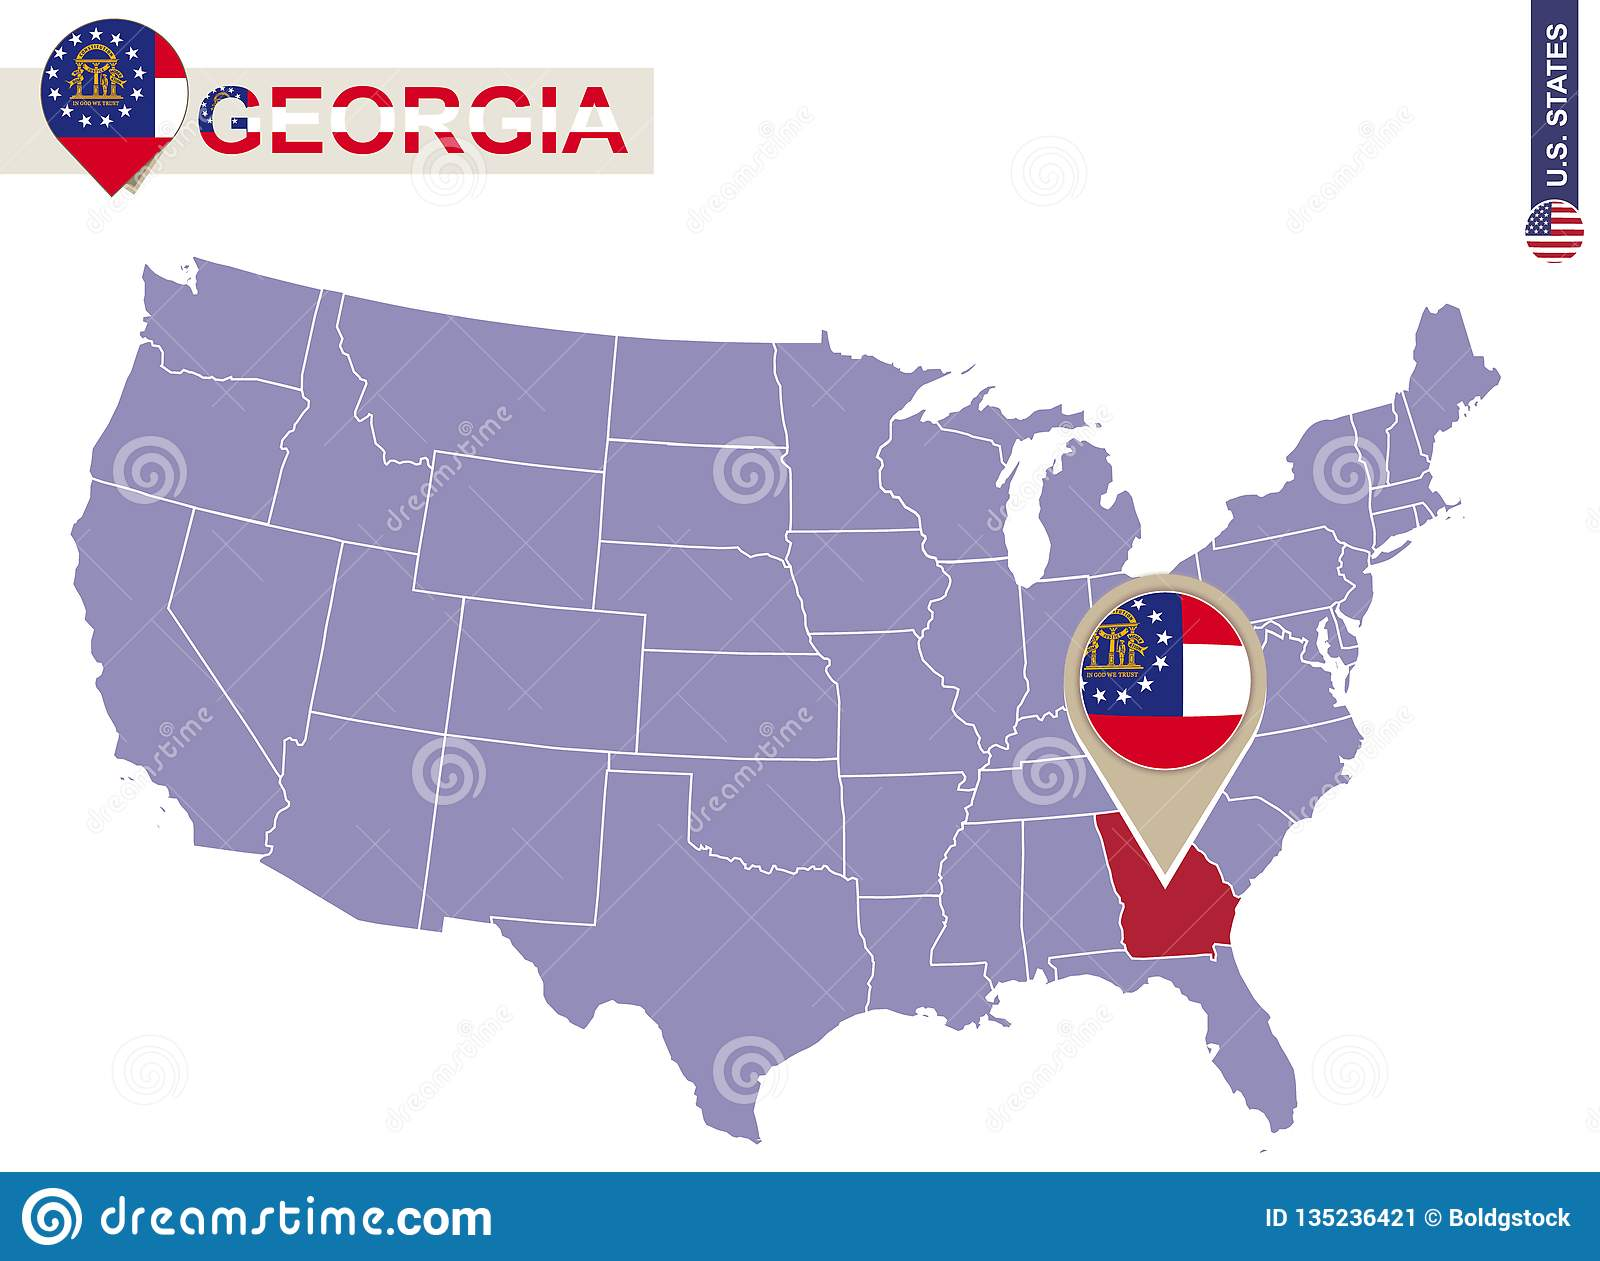 Georgia On Usa Map.Georgia State On Usa Map Georgia Flag And Map Stock Vector